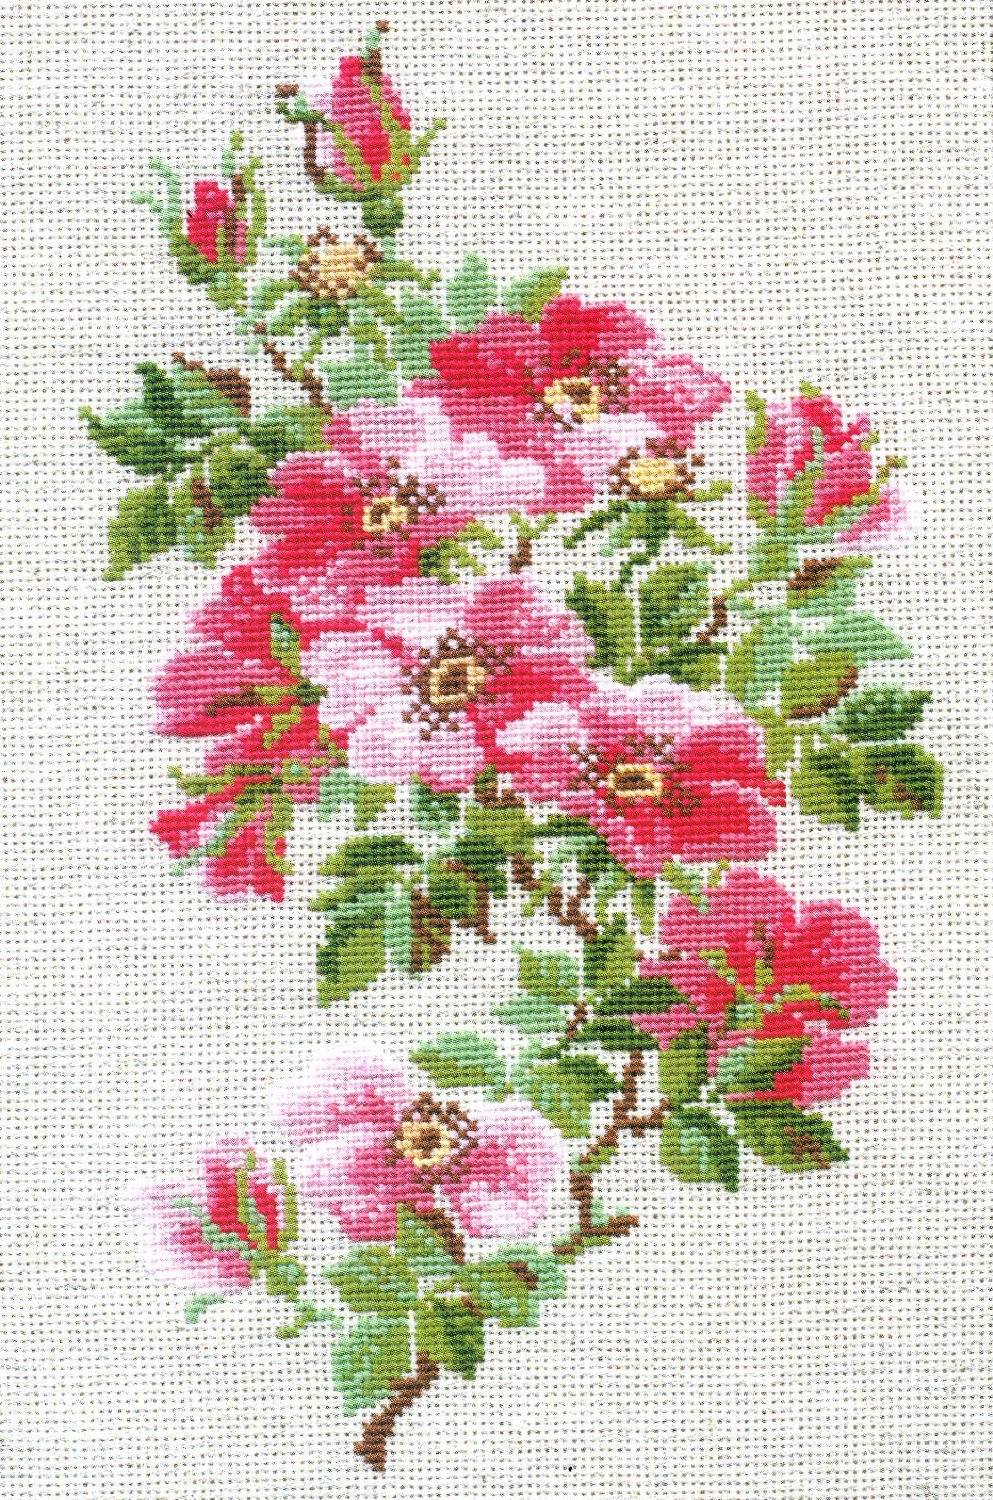 Free Cross Stitch Patterns Better Cross Stitch